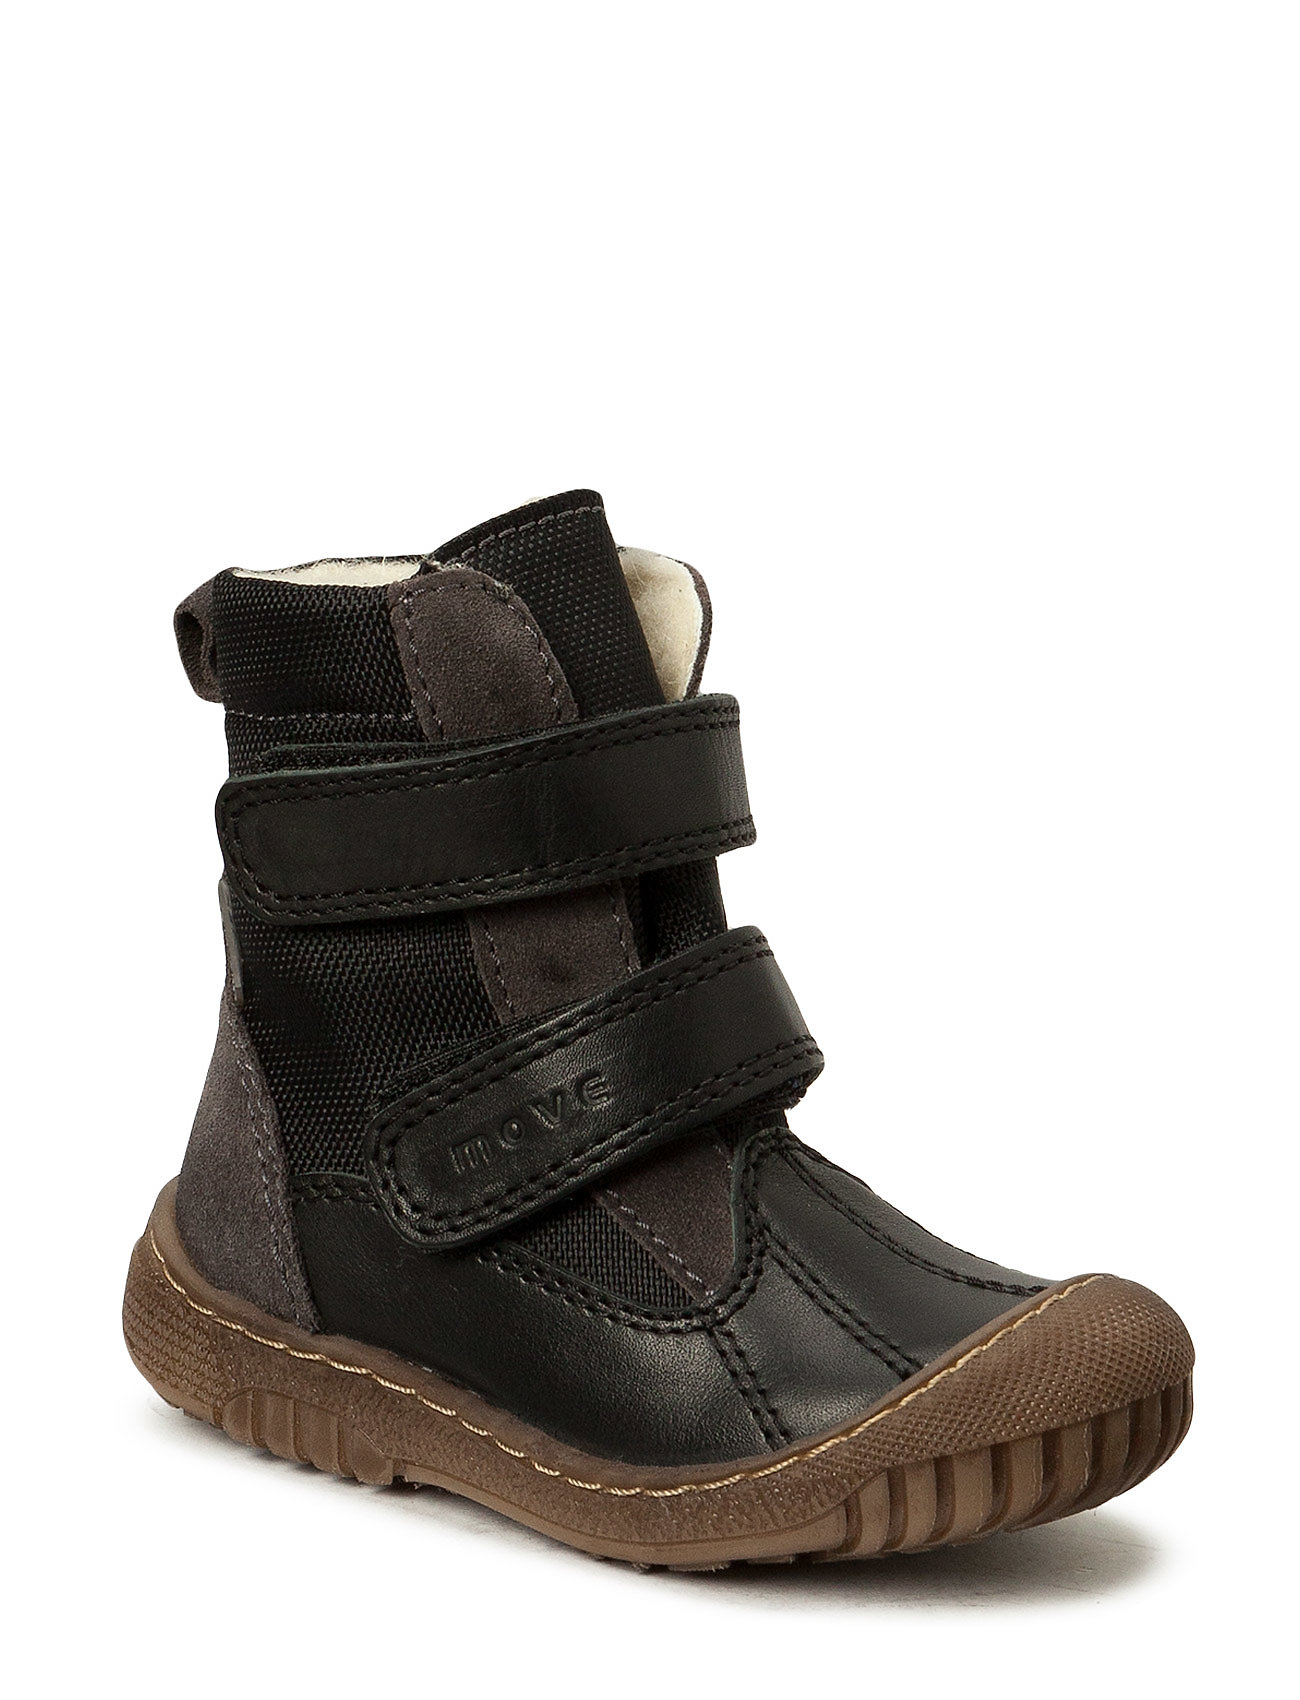 Move by Melton OB Infant TEX boot